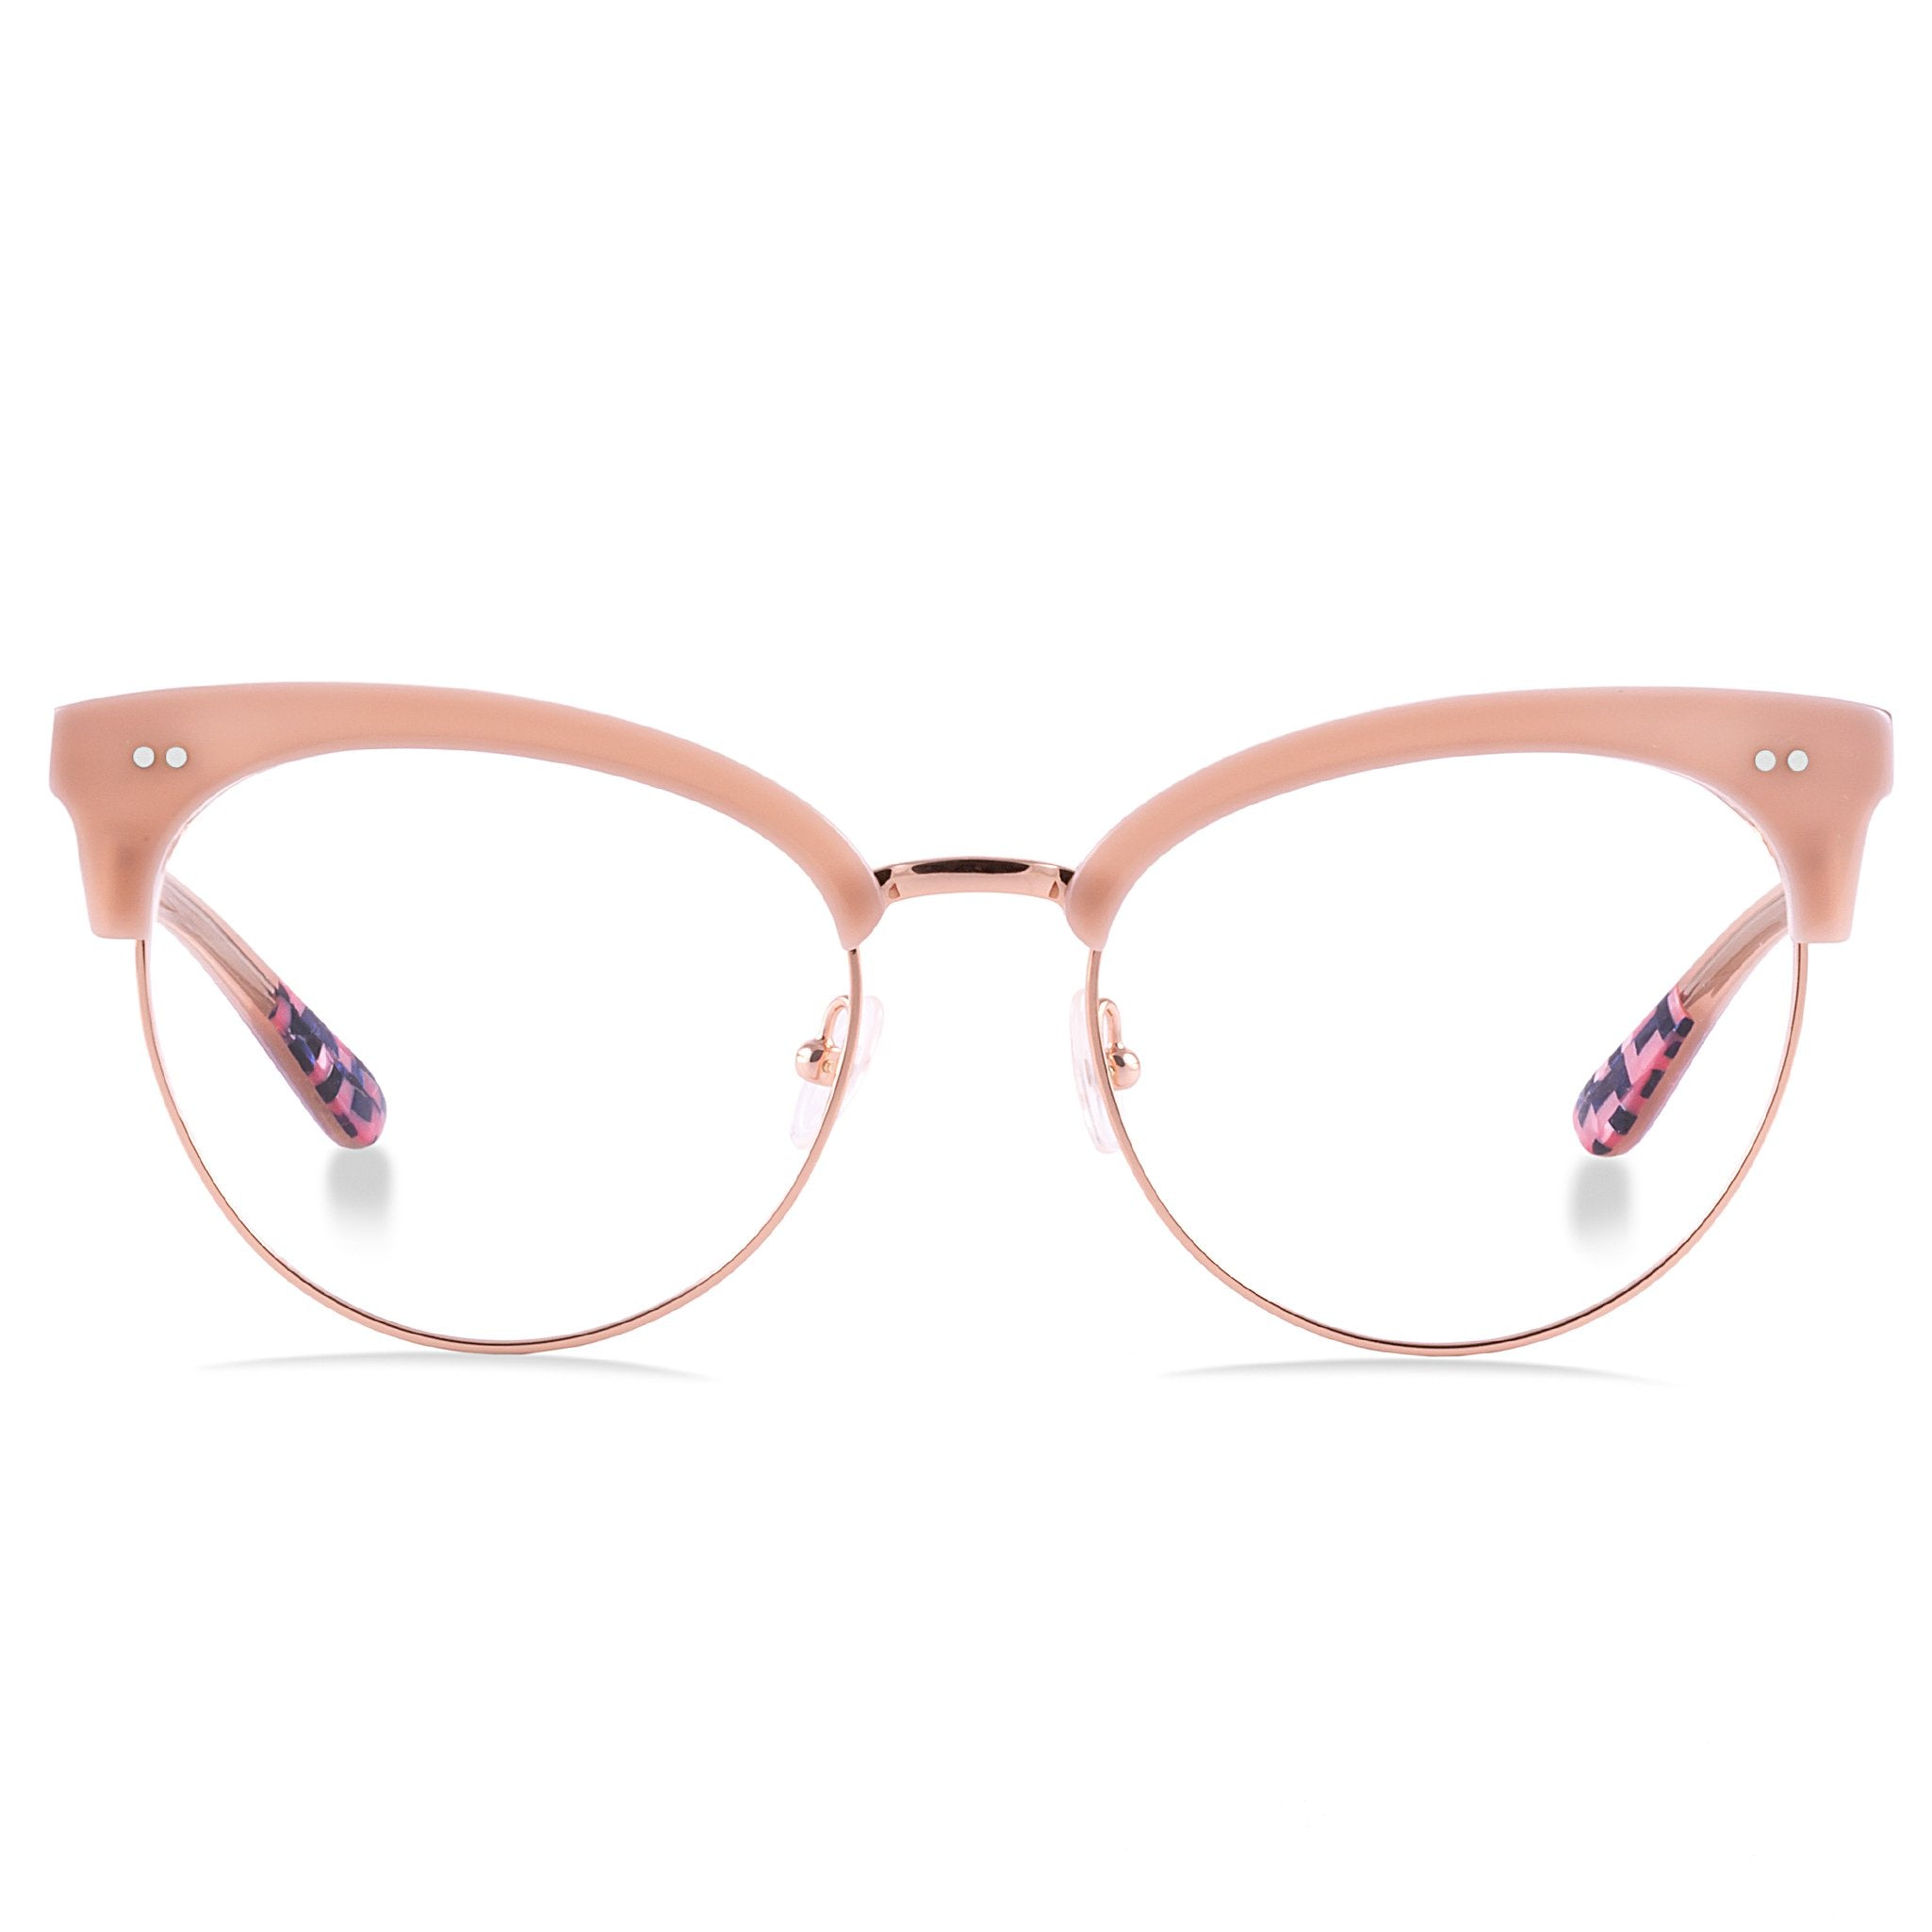 Jacqueline - Sale in Musk Pink